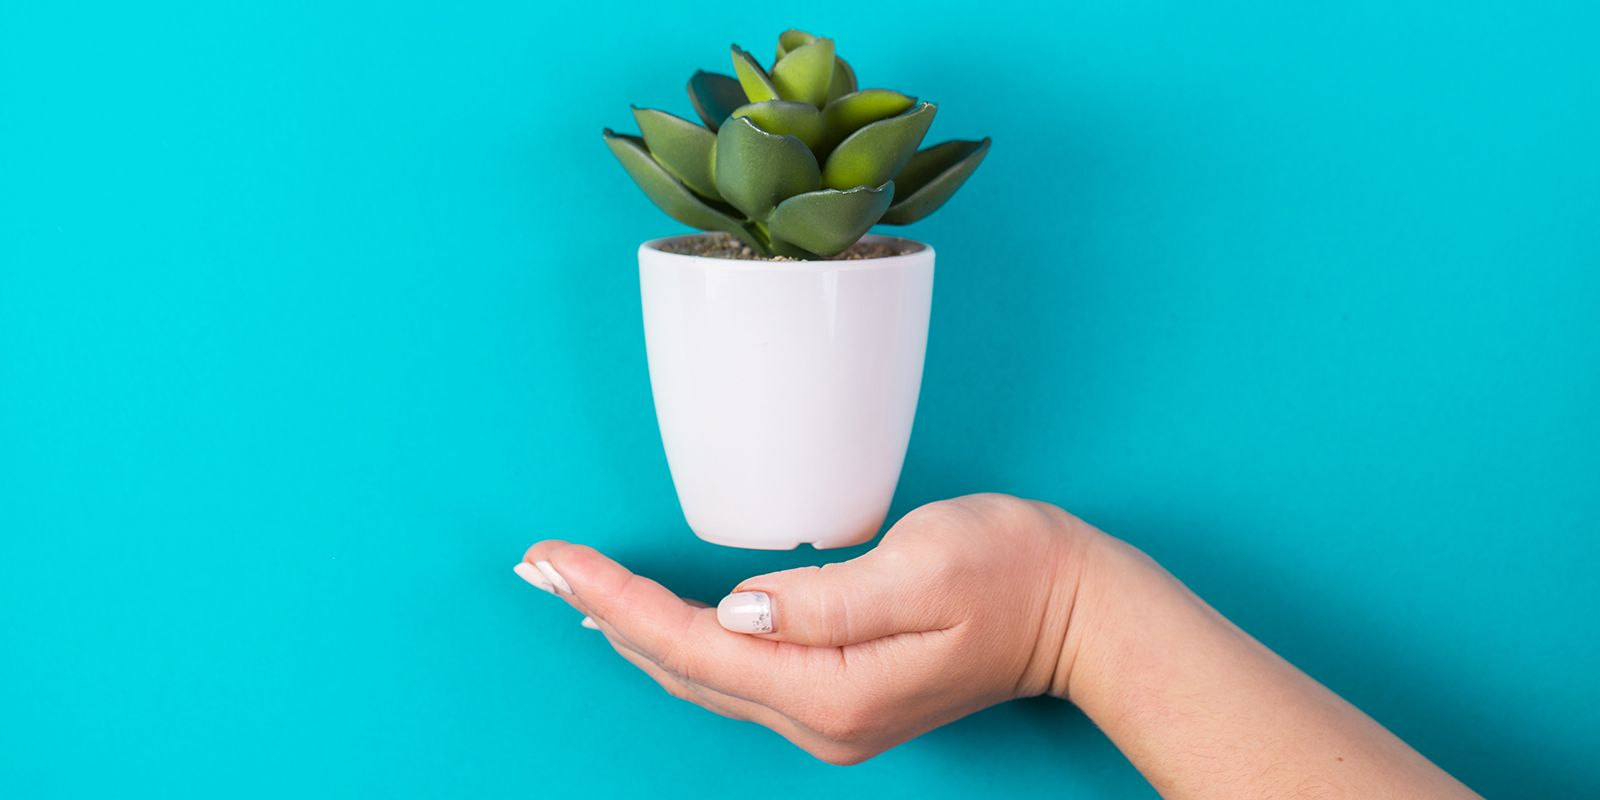 A picture of a white plant pot with a cactus in with a blue background on the B2B PR agency page.